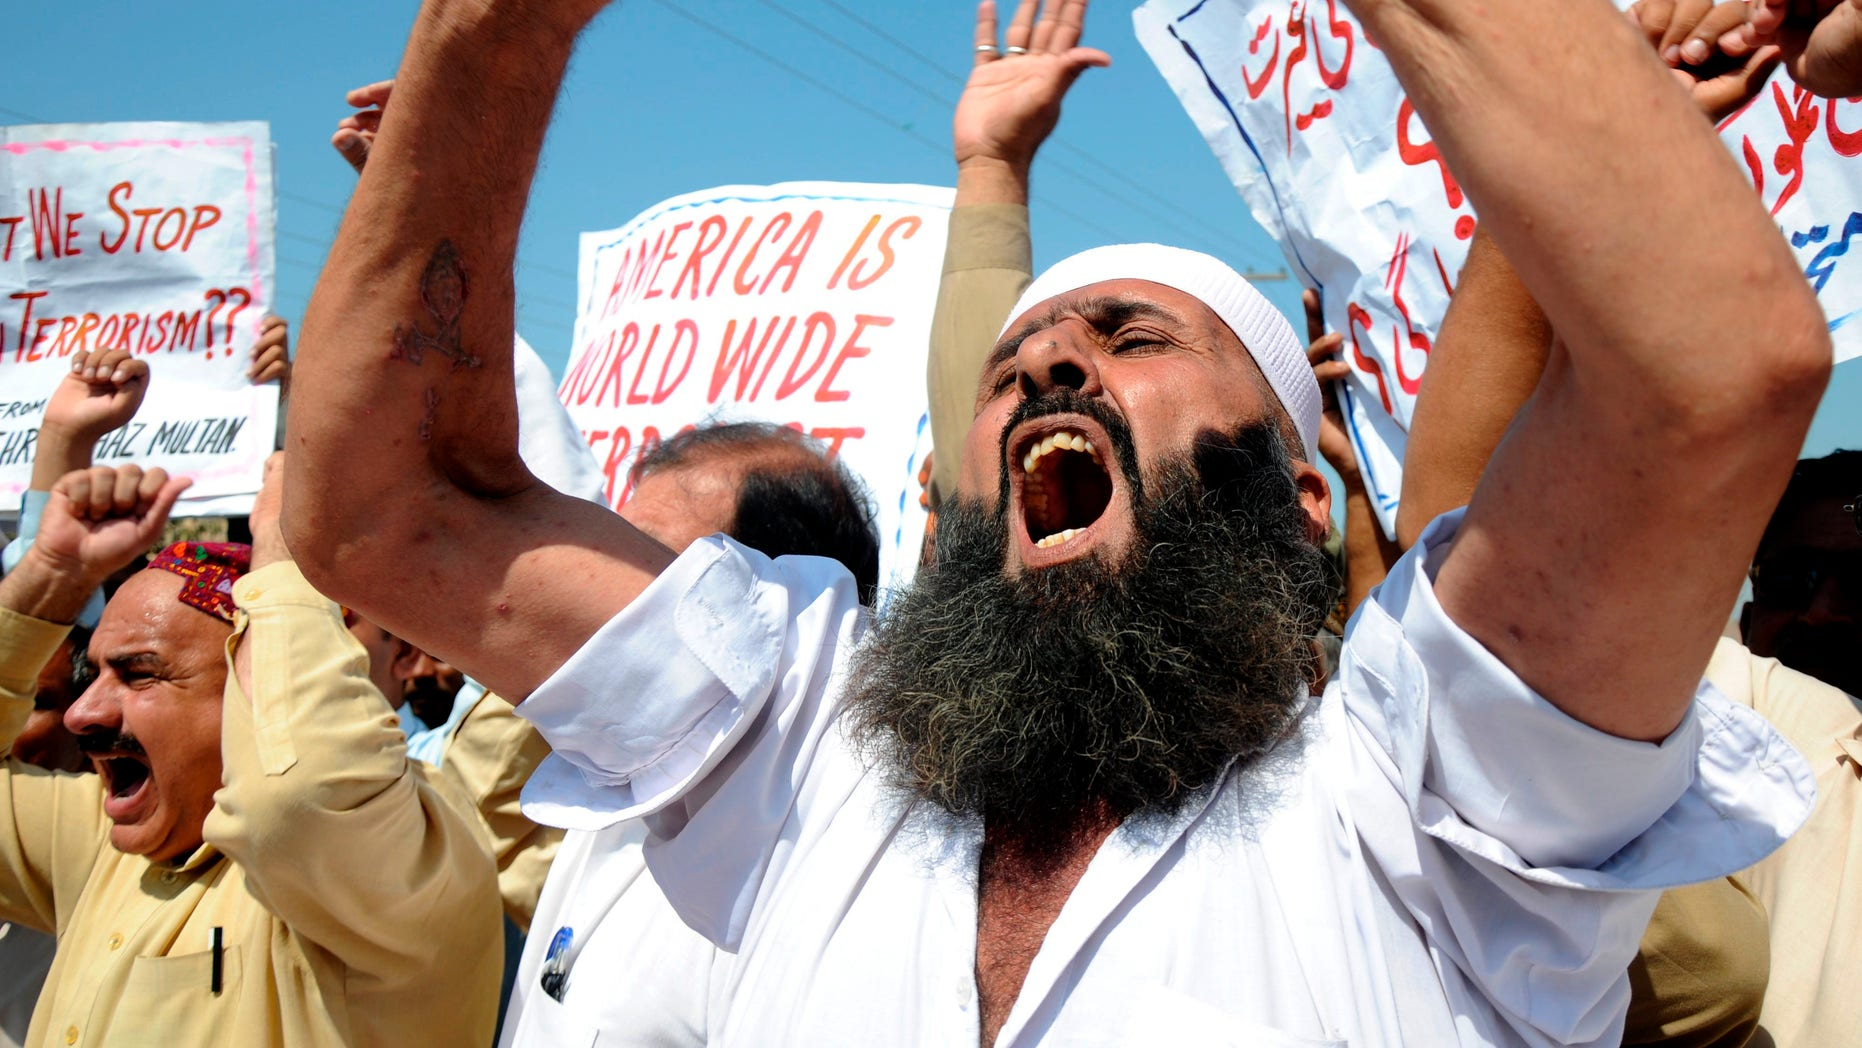 People shout anti-American slogans at a rally to condemn U. S. strikes on militants' hideouts in Pakistani tribal areas, in Multan, Pakistan on Friday, Oct 14, 2011.